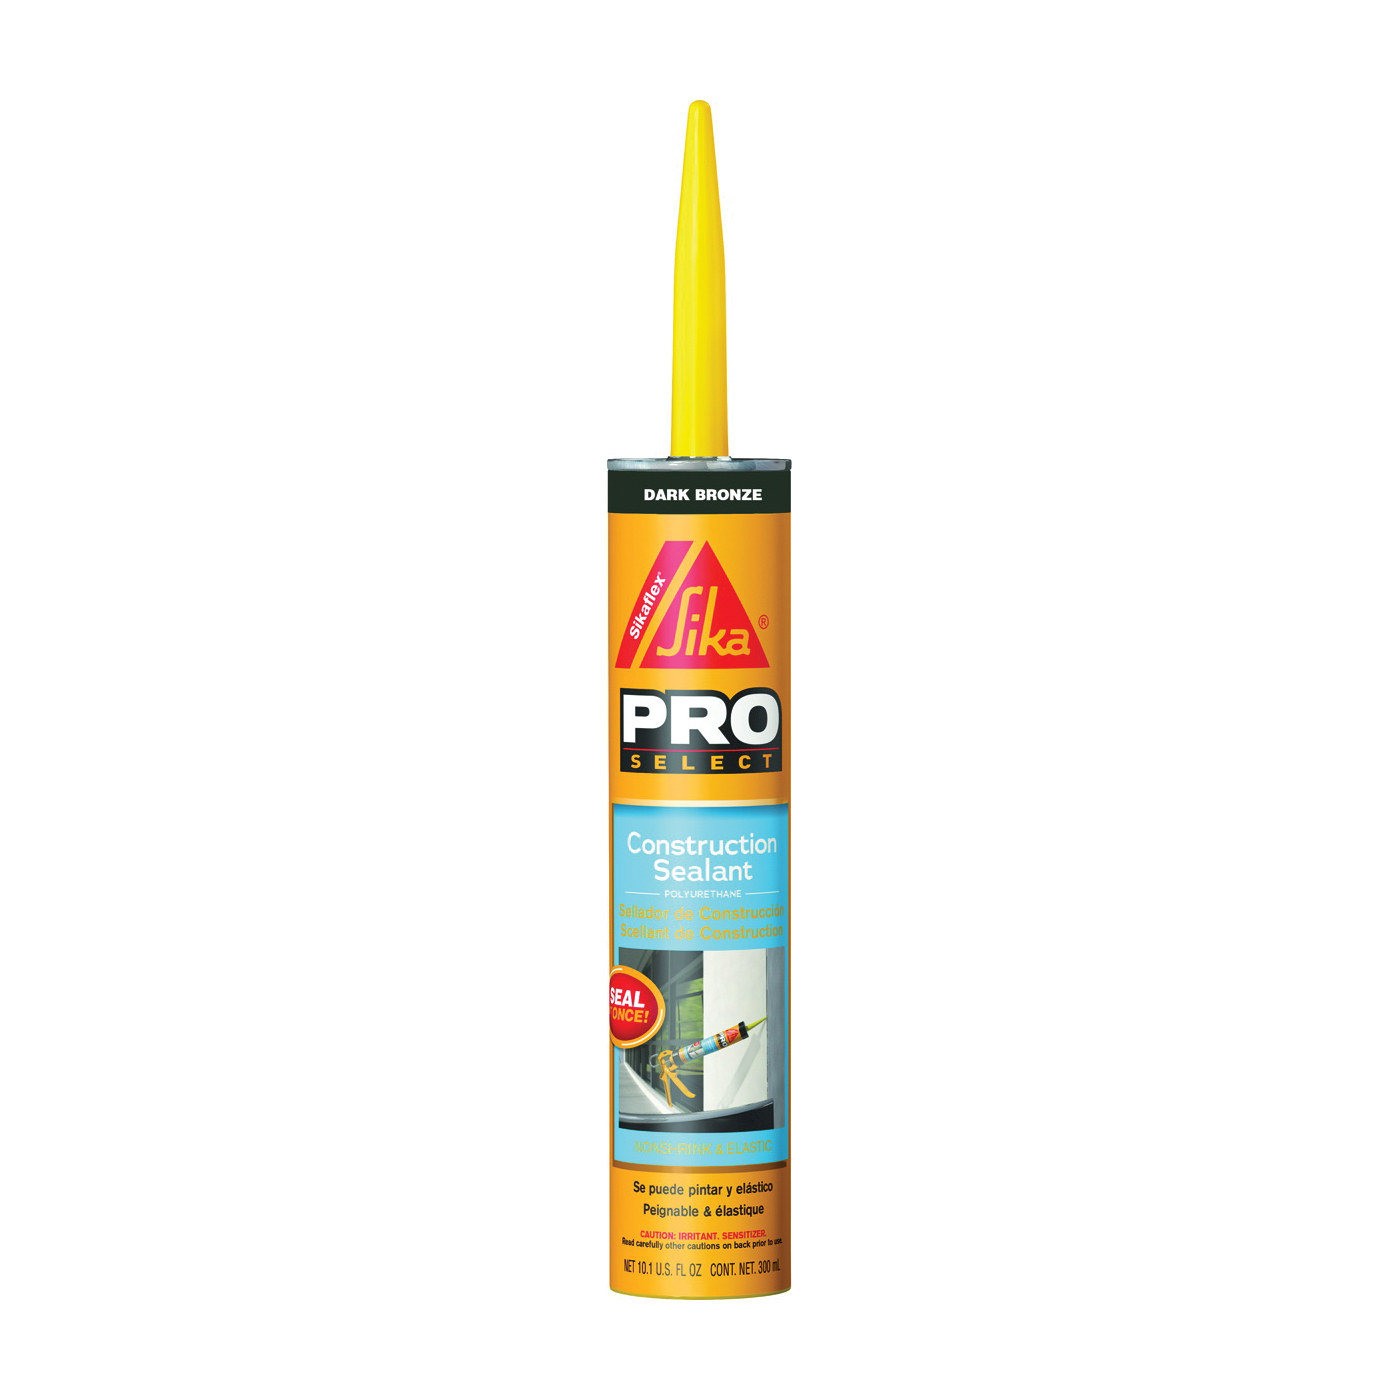 Picture of Sikaflex 515310 Construction Sealant, Dark Bronze, 7 Days Curing, 40 to 100 deg F, 10.1 oz Package, Cartridge